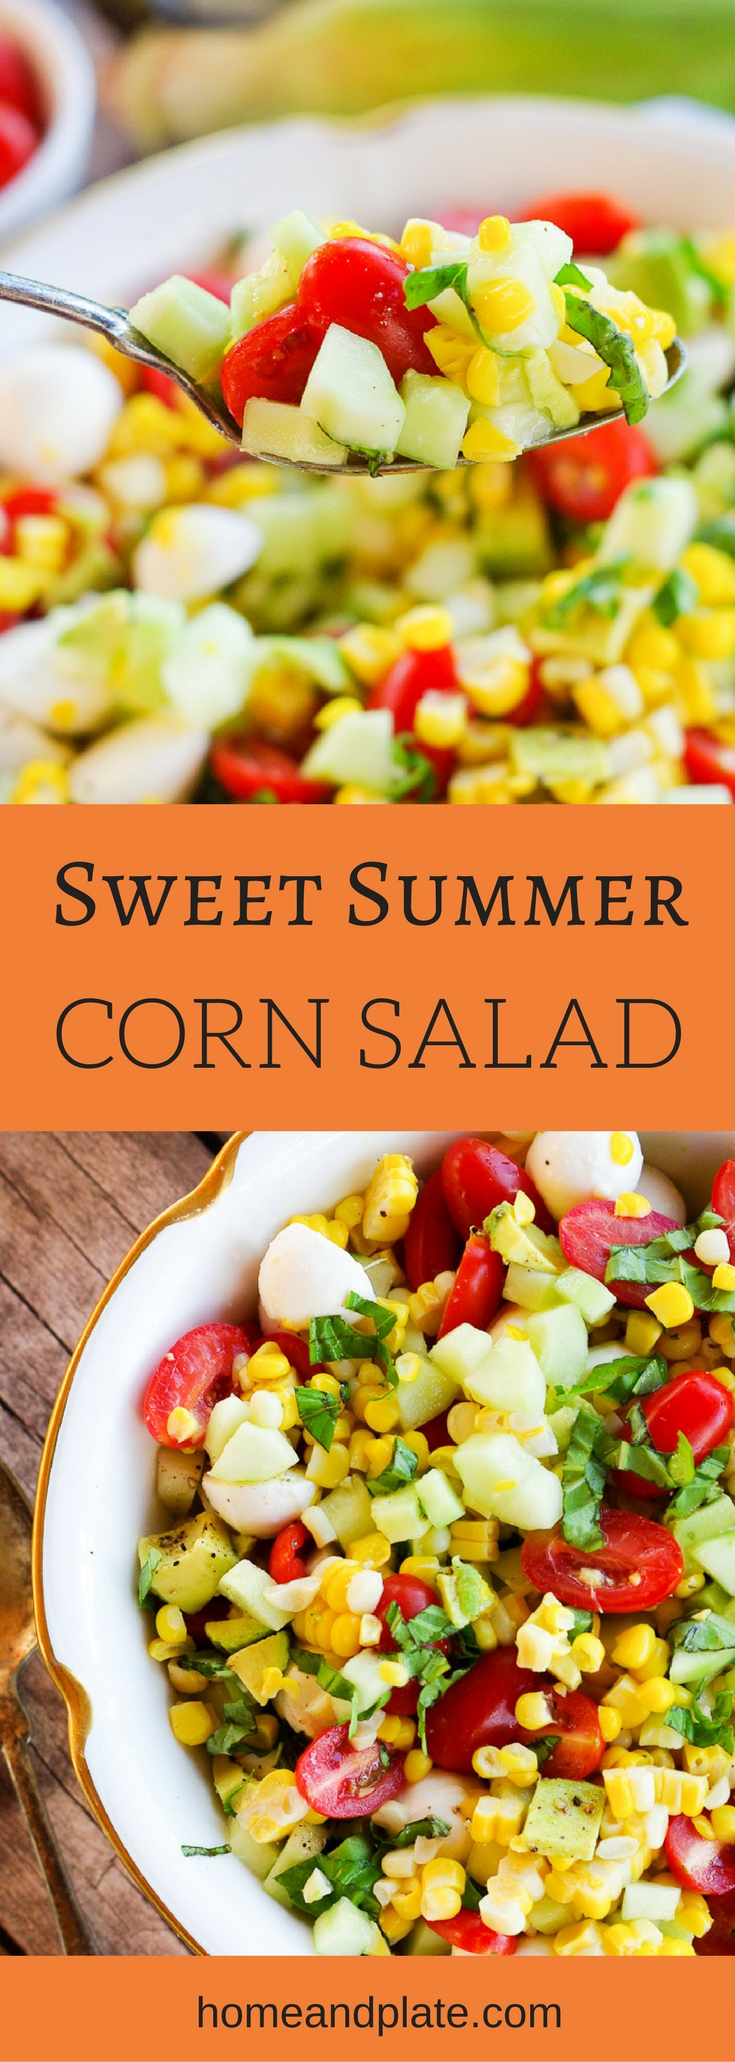 Summer Sweet Corn Salad | Enjoy summer's bounty of fresh fruits and vegetables with a corn salad featuring sweet cherry tomatoes, diced avocado, fresh mozzarella and homegrown basil. | www.homeandplate.com